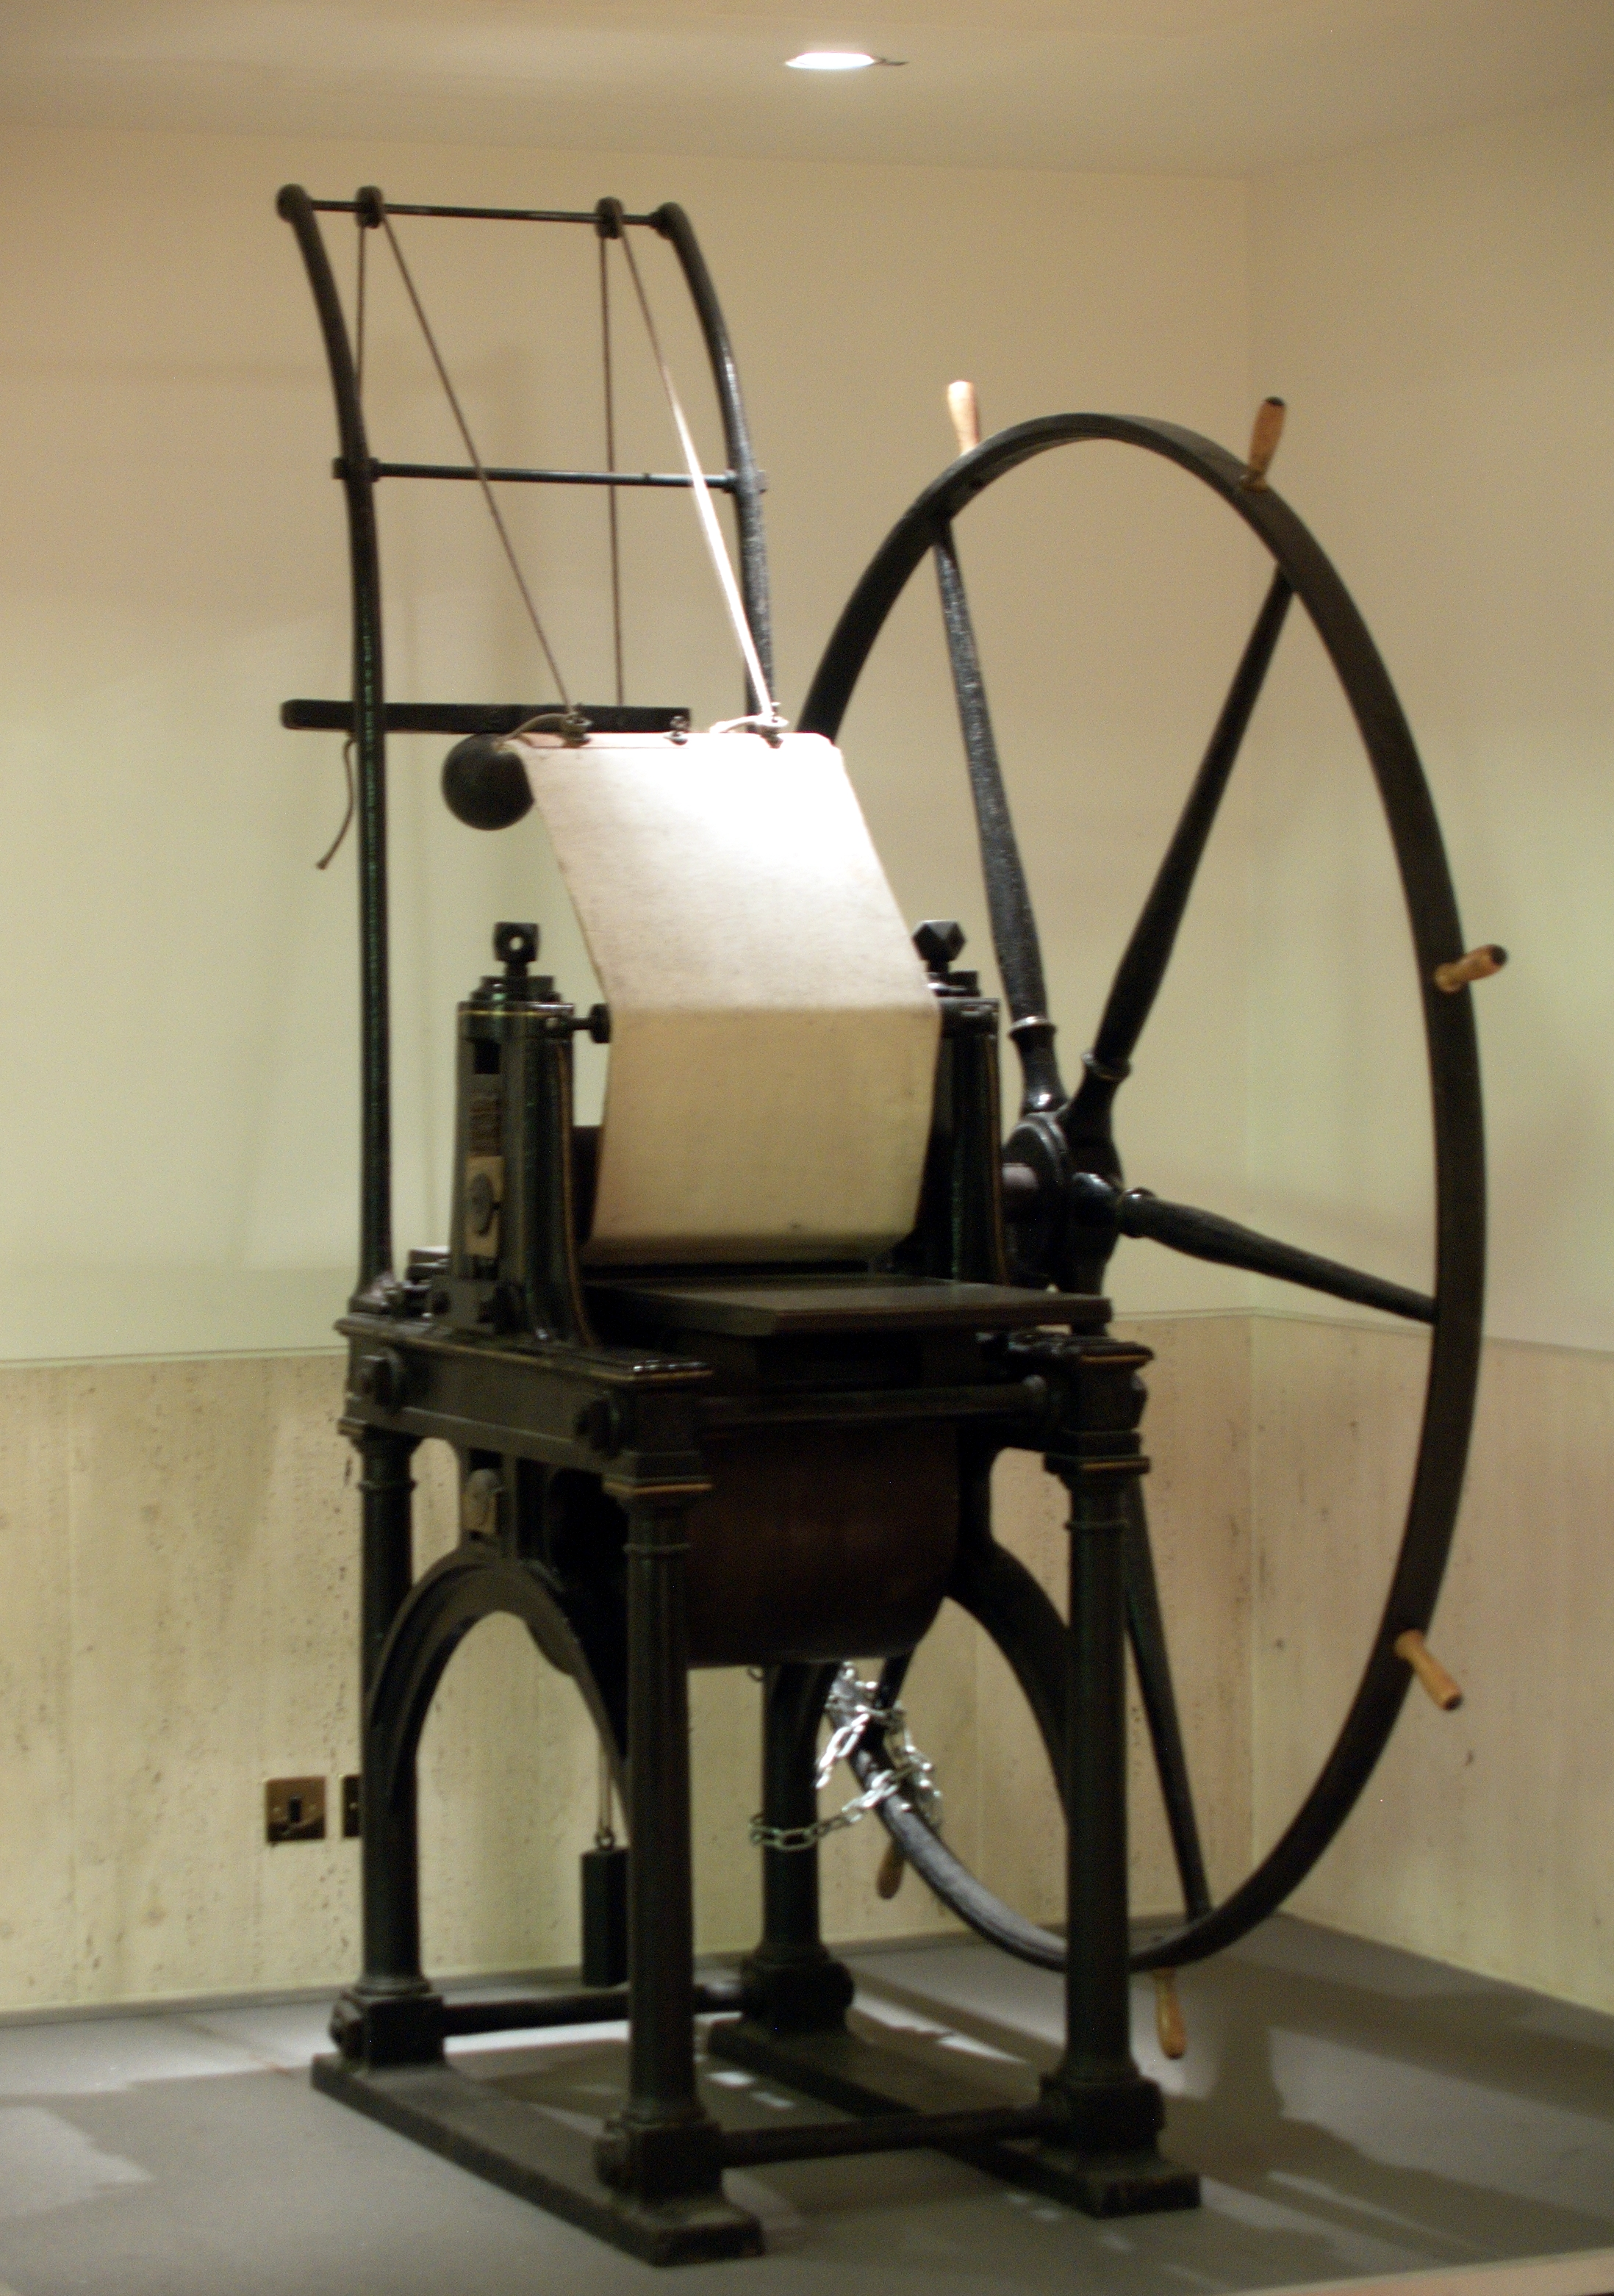 The Jacob Perkins' D cylinder printing press, which printed the Penny Black and the 2-pence Blue, in the British Library Philatelic Collections. Photo taken on September 28, 2009.